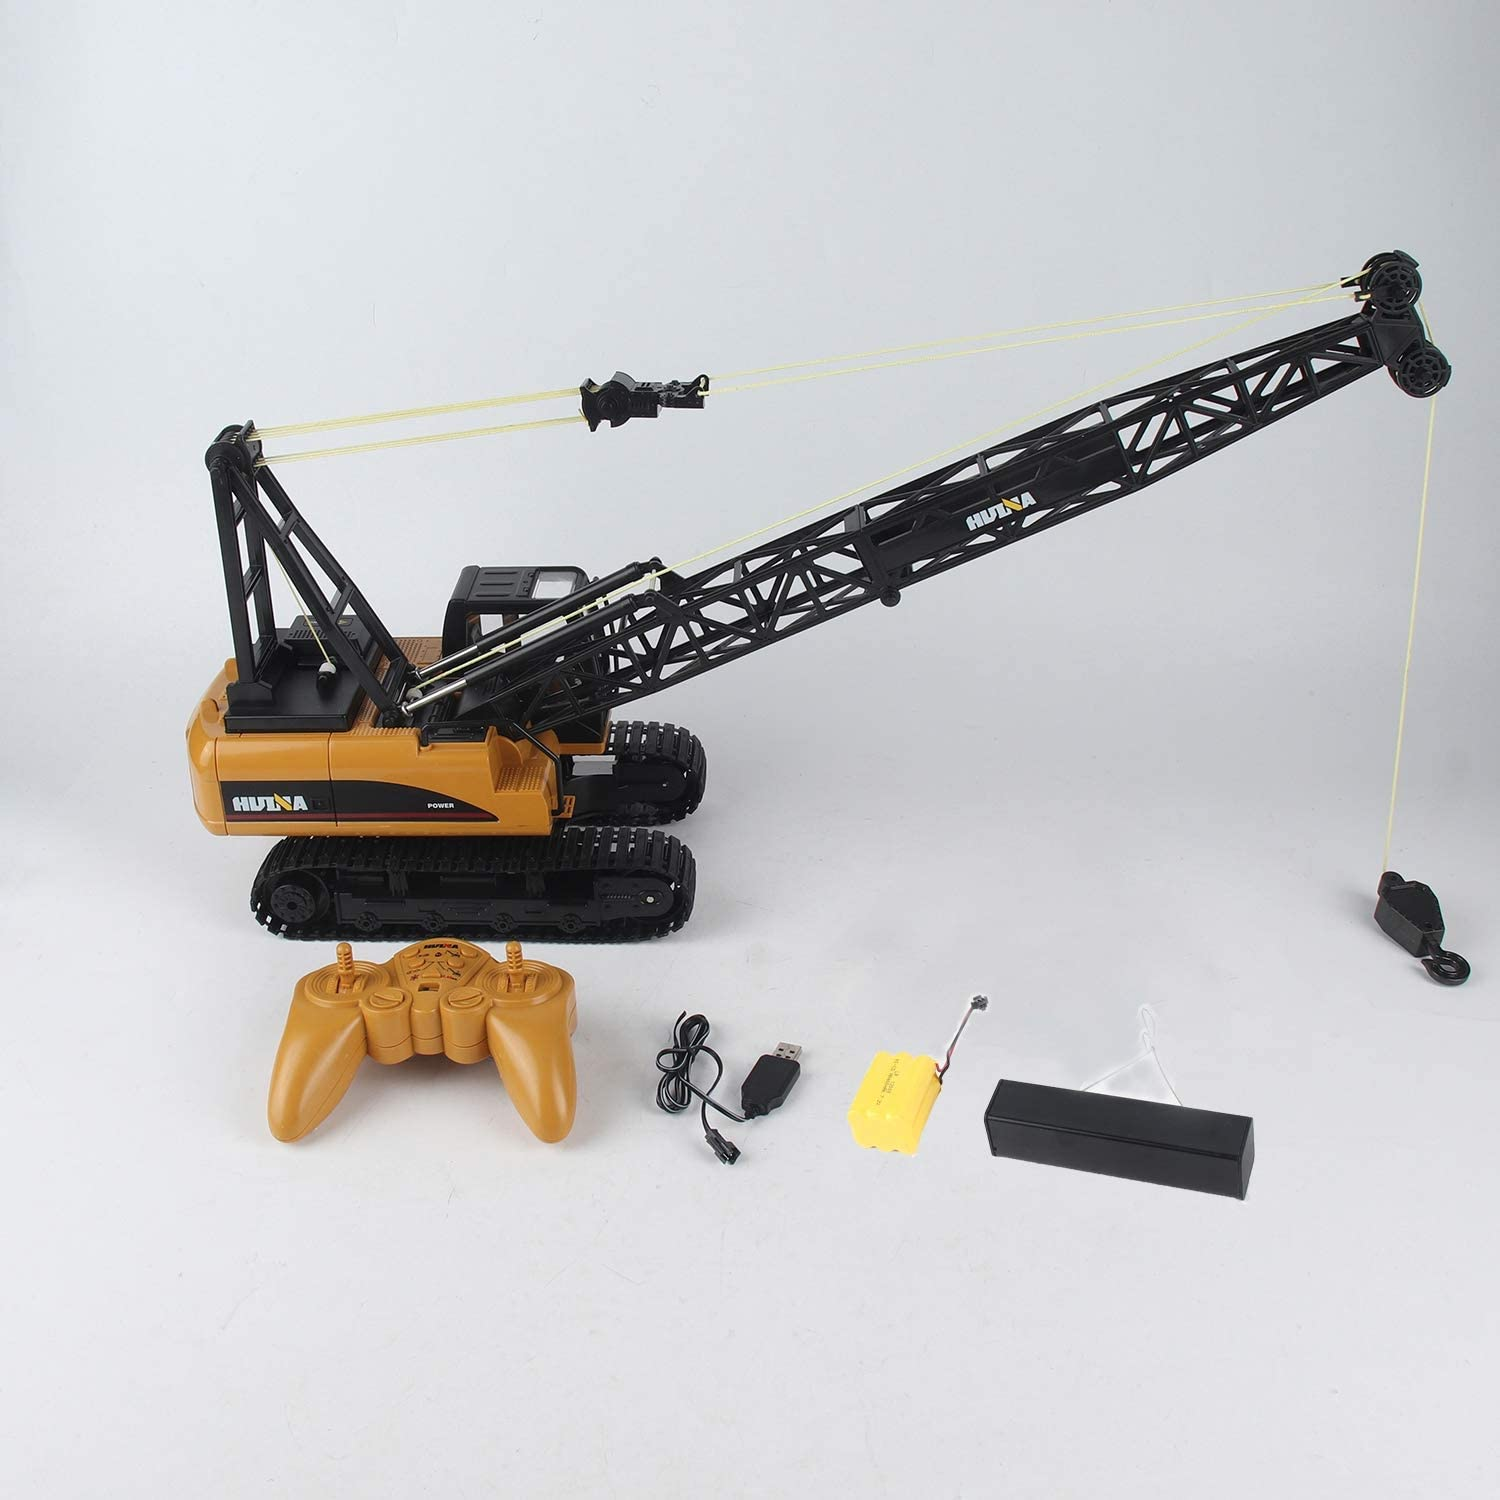 RC Crane HUINA 1572 15ch RC Alloy Crane 1 14 2.4GHz Engineering Movable Latticed Boom Hook Mechanical Truck Toy Car with Sound Light